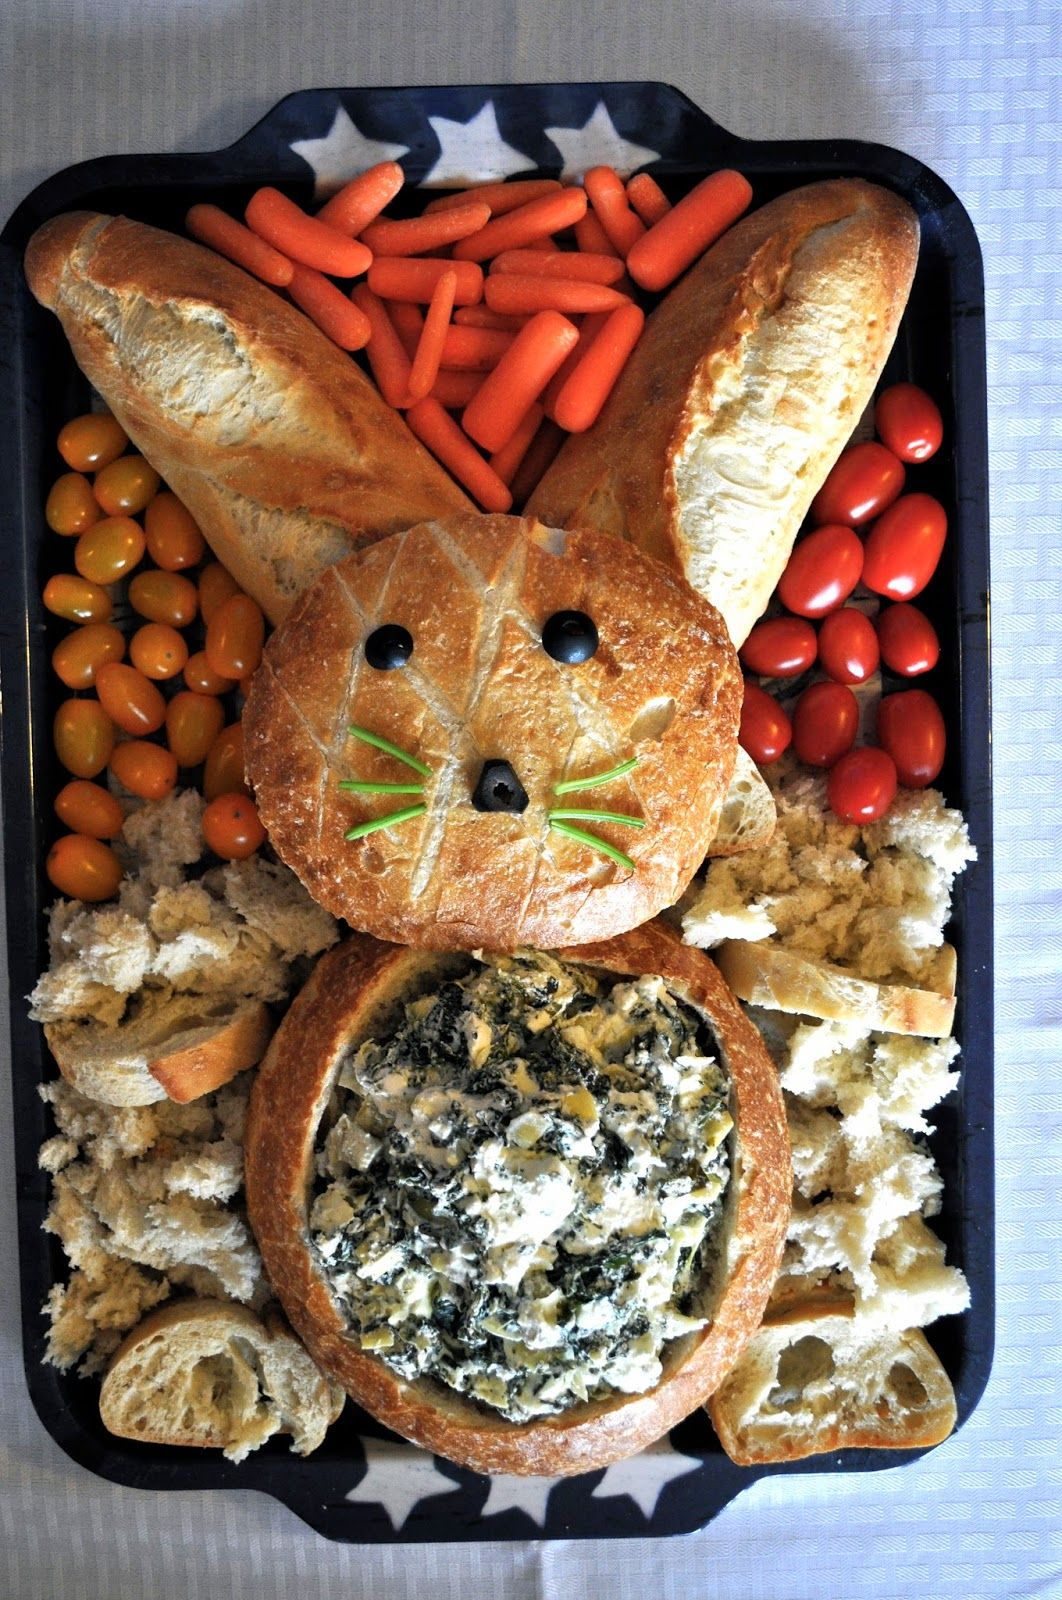 Our Italian Kitchen: Easter Bunny Veggie and Dip Platter   Easter